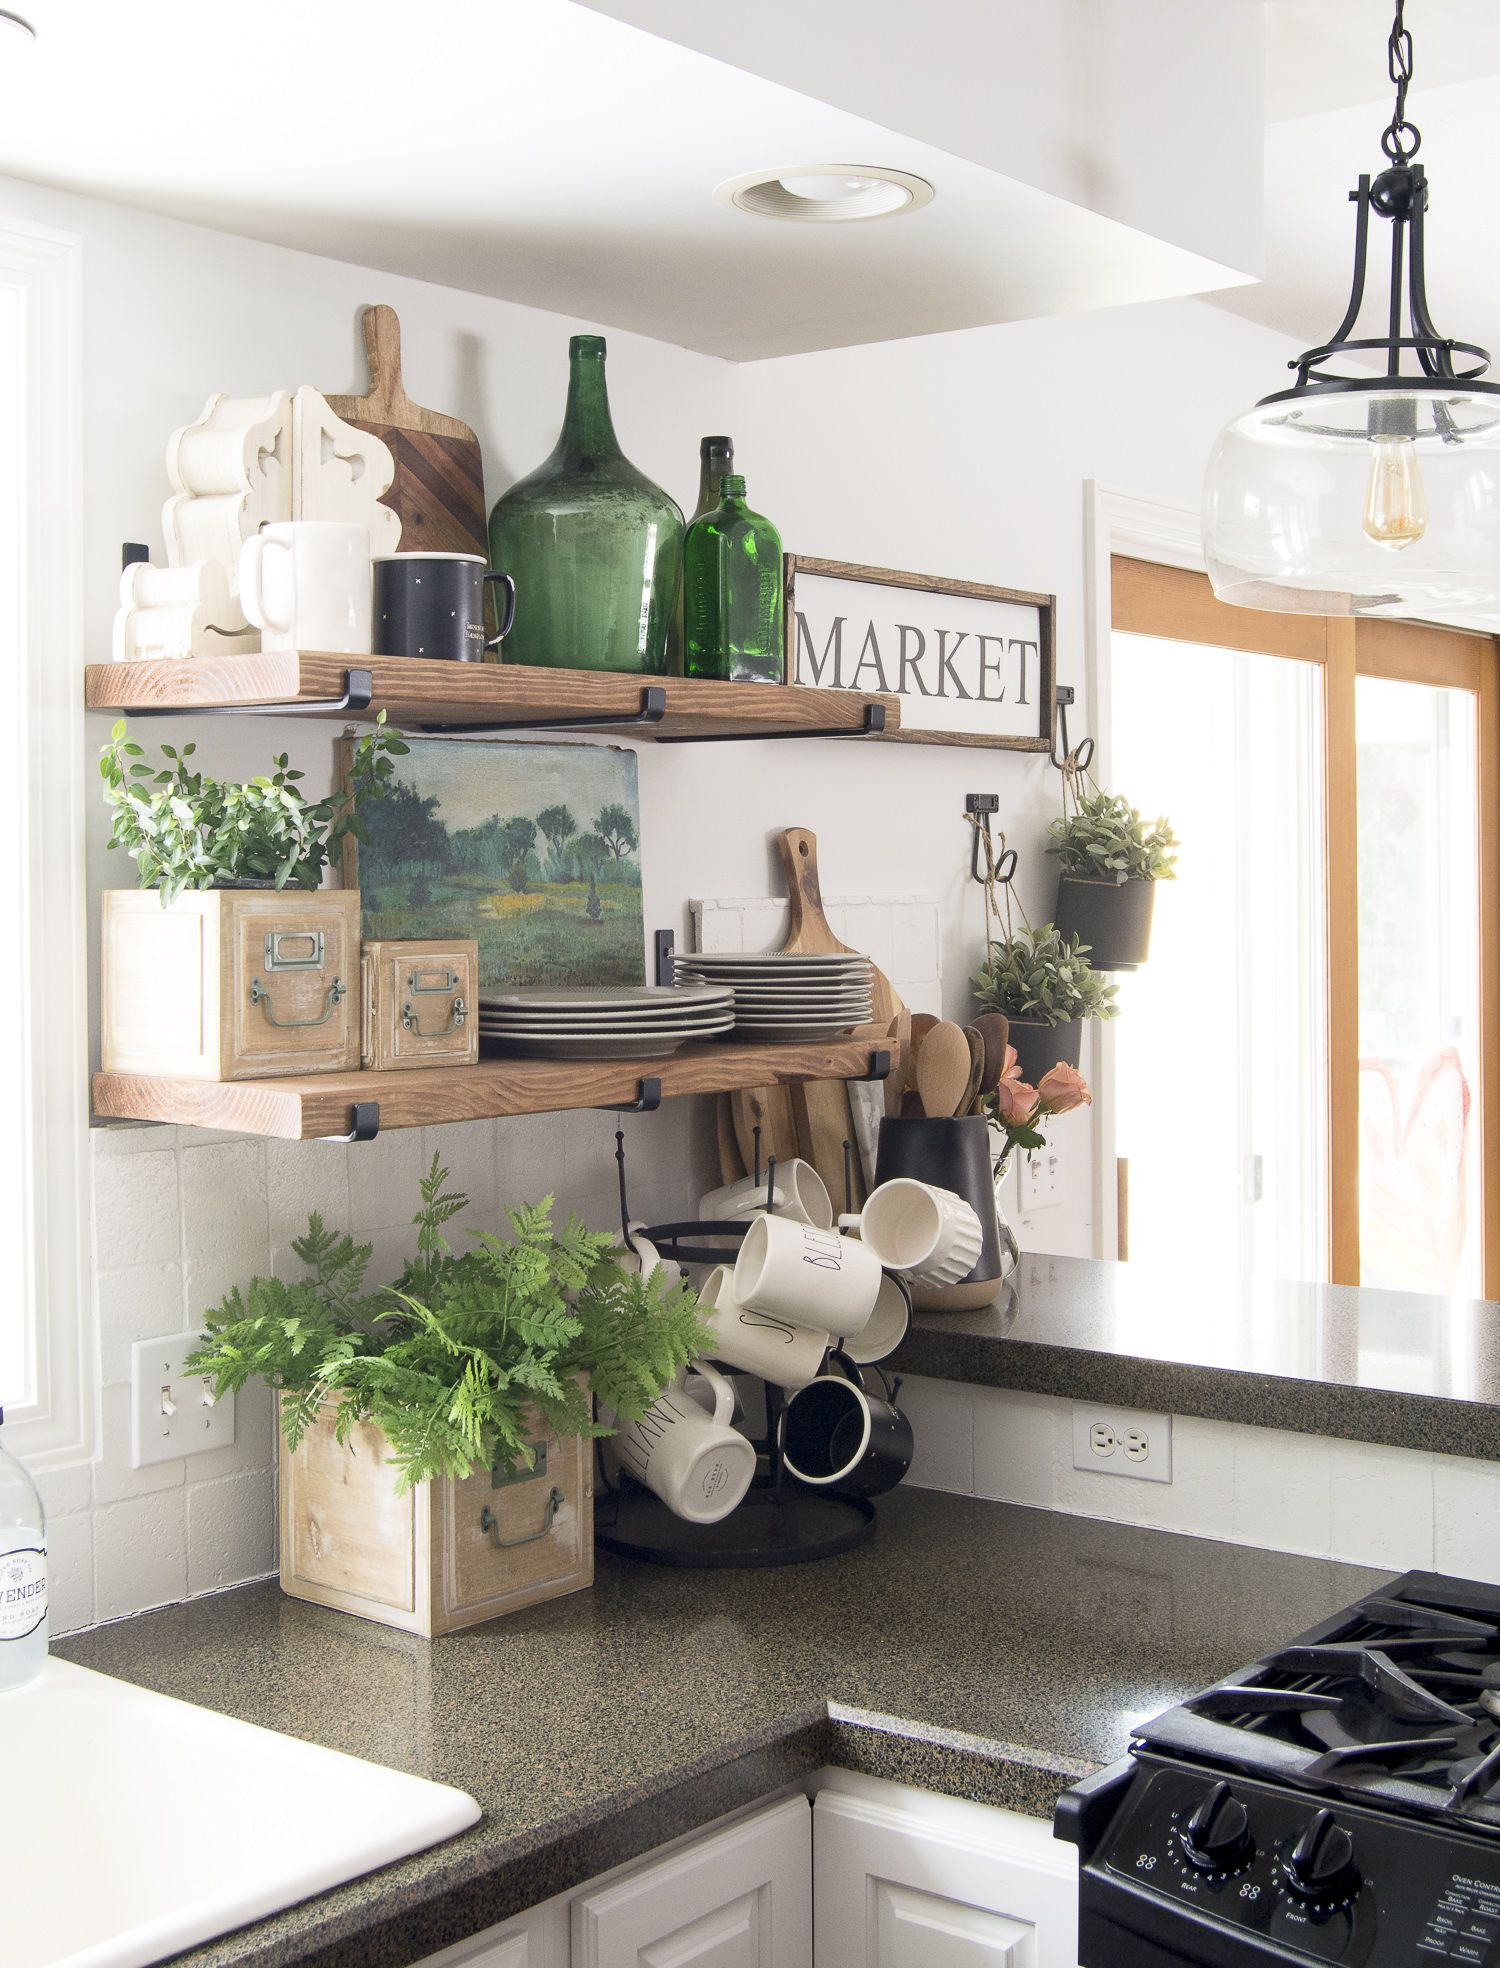 Open shelving for daily use is the new standard for modern